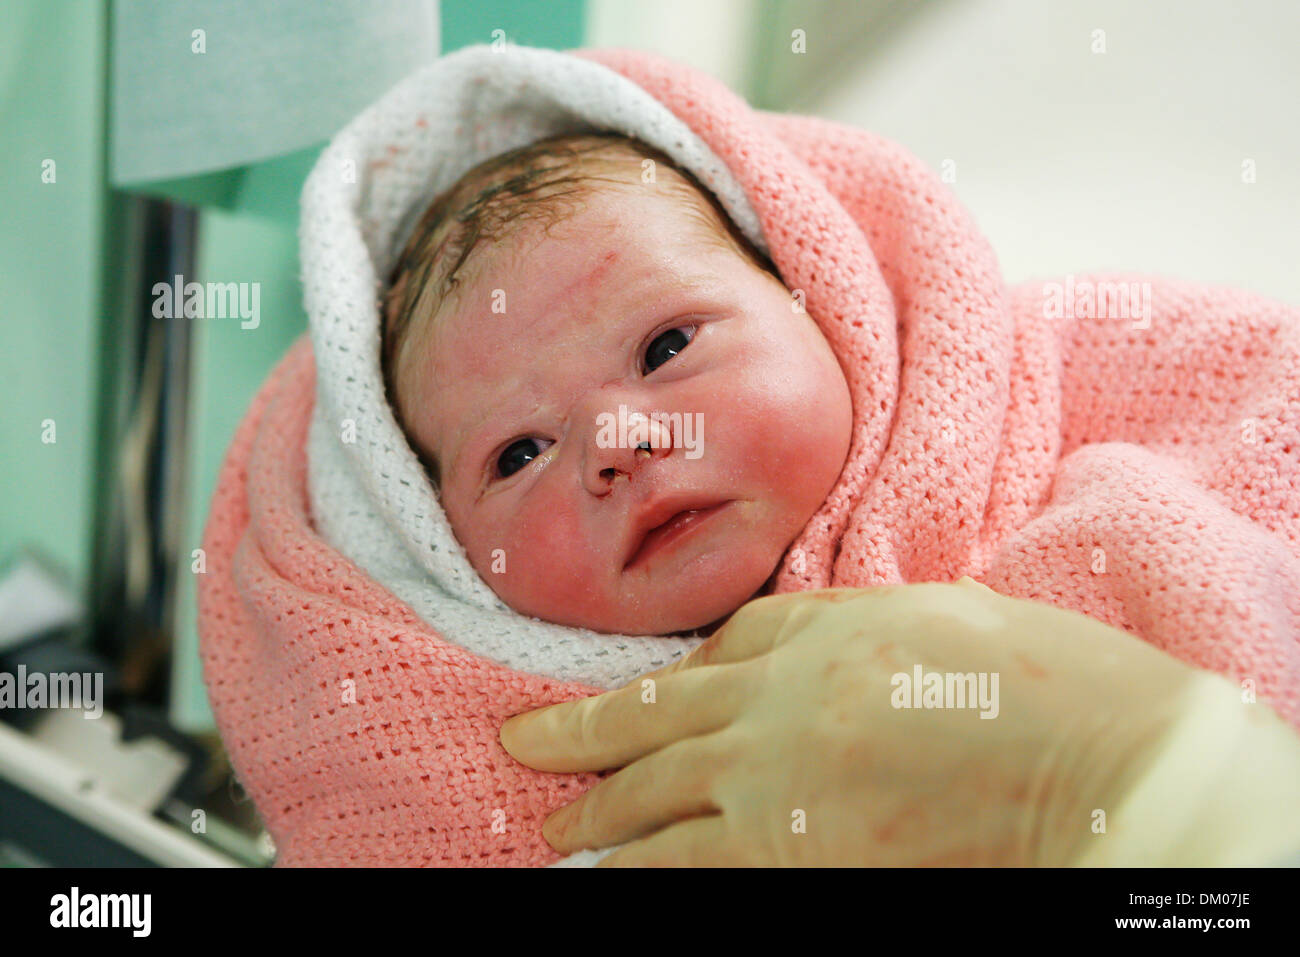 A Newborn Baby Moments After Birth Wrapped In Hospital